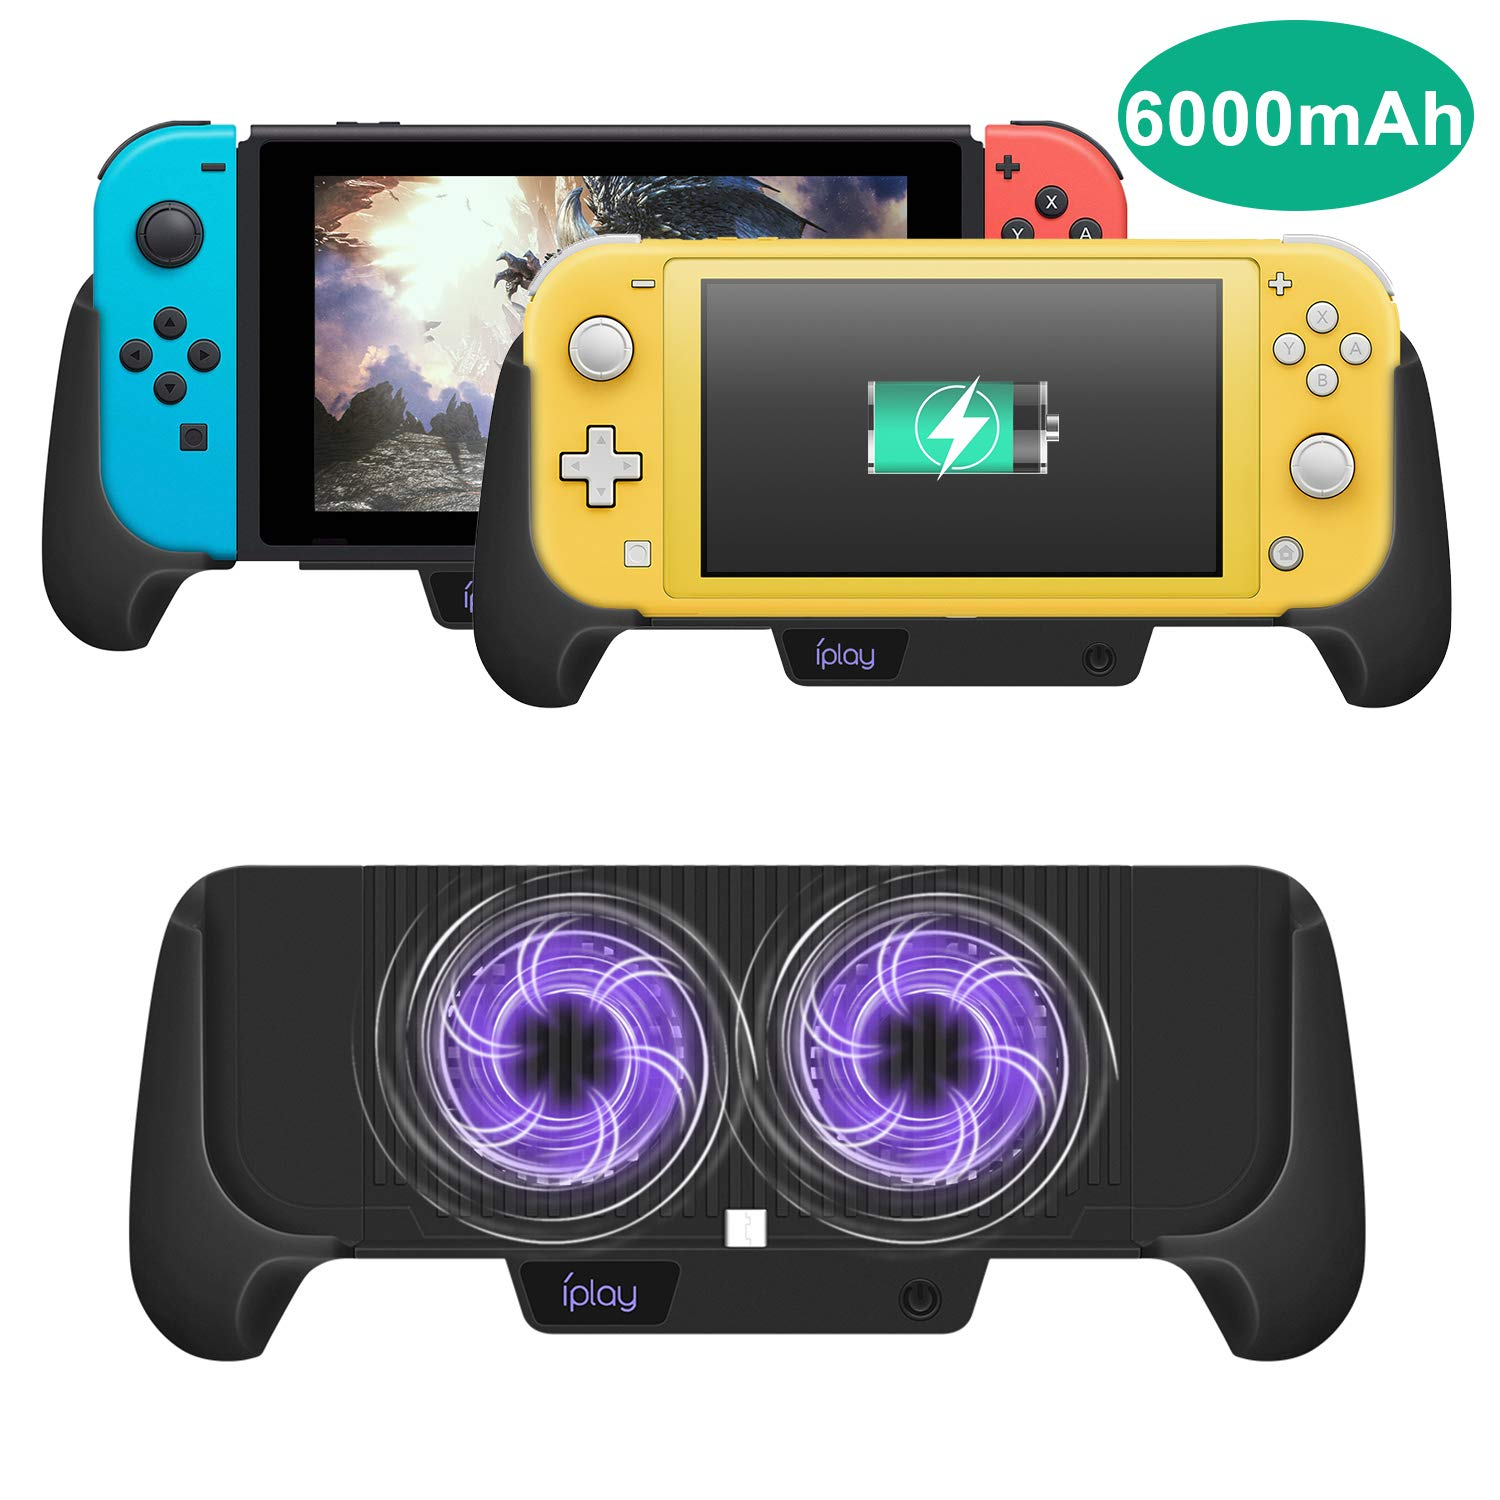 Cooling Charging Grip for Nintendo Switch/Switch Lite, Multifunctional 4 in 1 Gaming Grip with Charger Stand Cooling Fan Bracket Design for Nintendo Switch Lite and Nintendo Switch